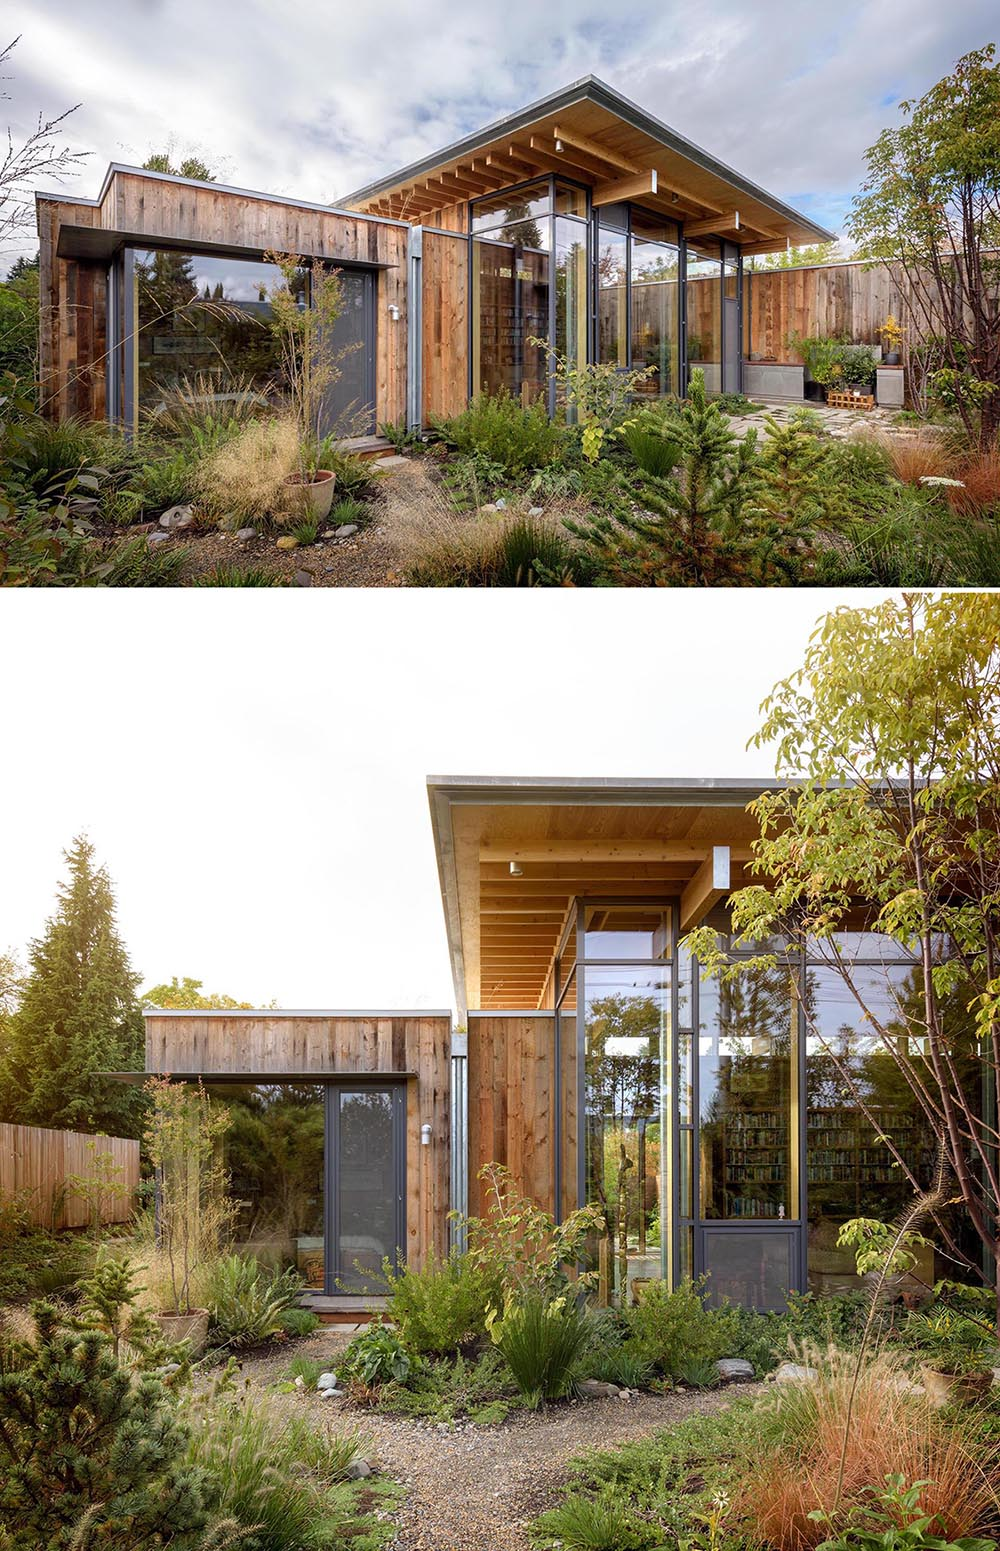 A modern wood cabin with fir wood exterior siding and glass walls.